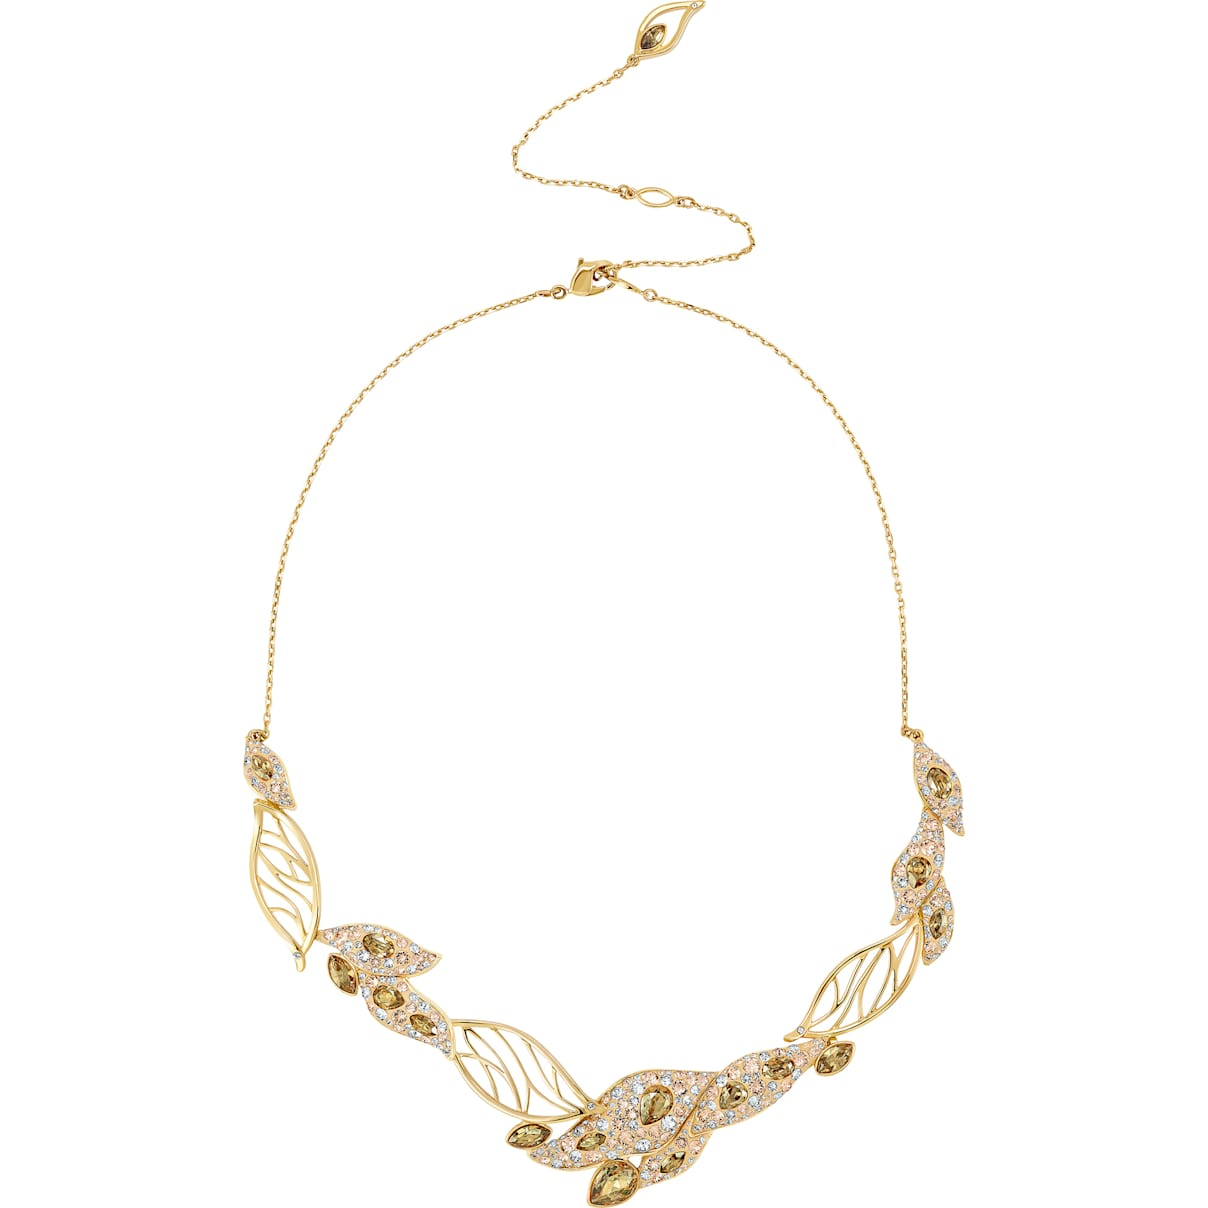 Swarovski Graceful Bloom Statement Necklace, Brown, Gold-tone plated